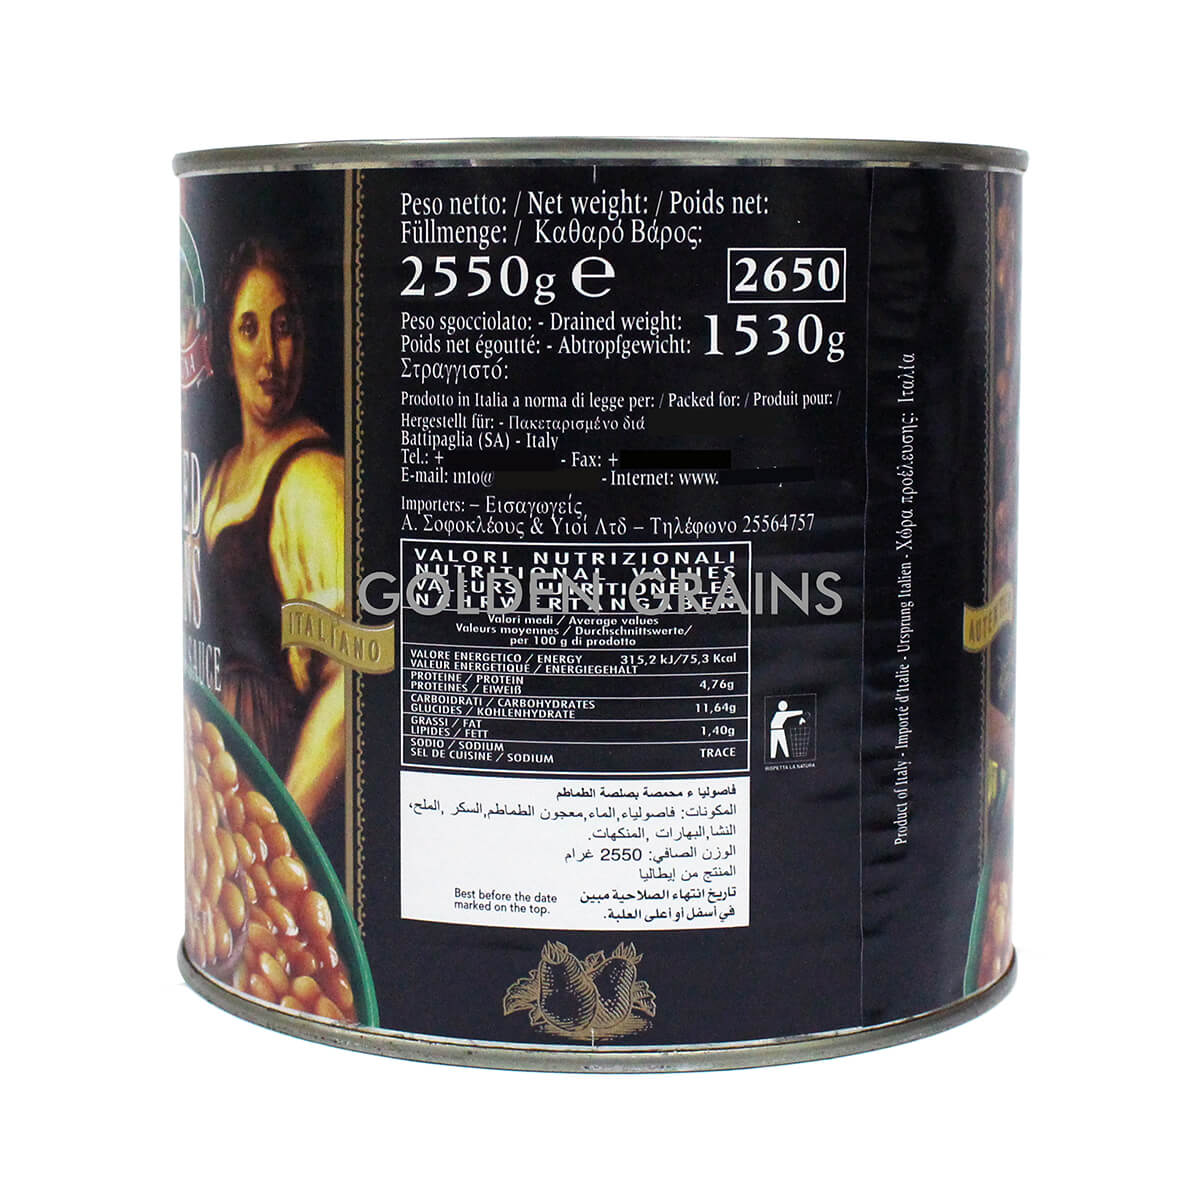 Golden Grains Campagna - Baked Beans in Tomato Sauce - 2550G - Italy - Back.jpg